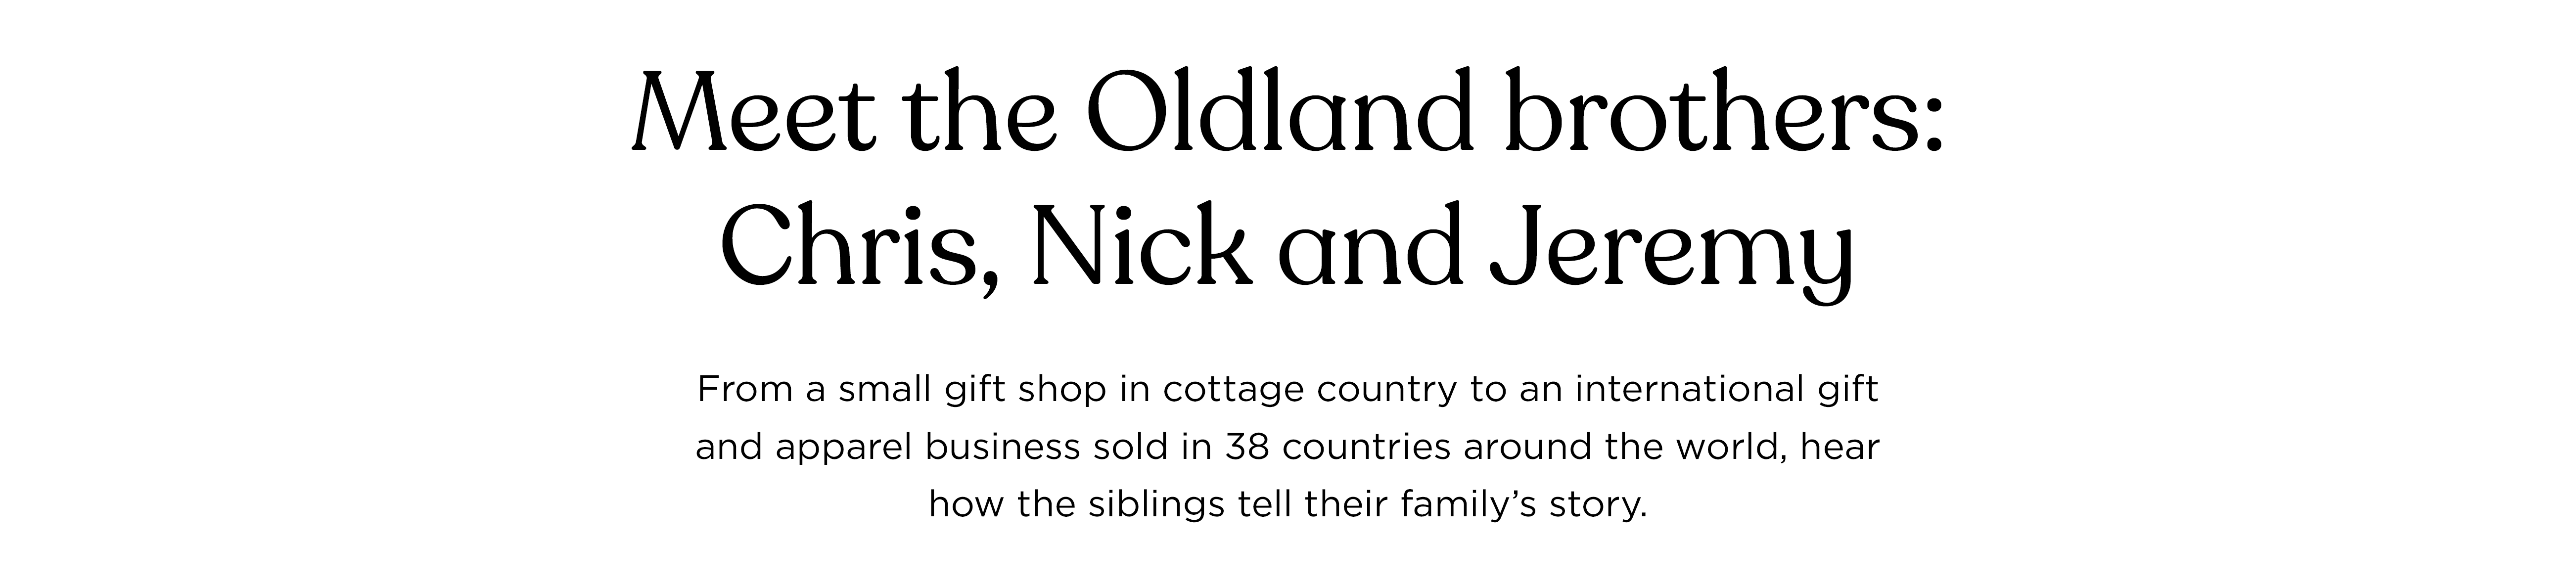 Meet the Oldland brothers: Chris, Nick and Jeremy